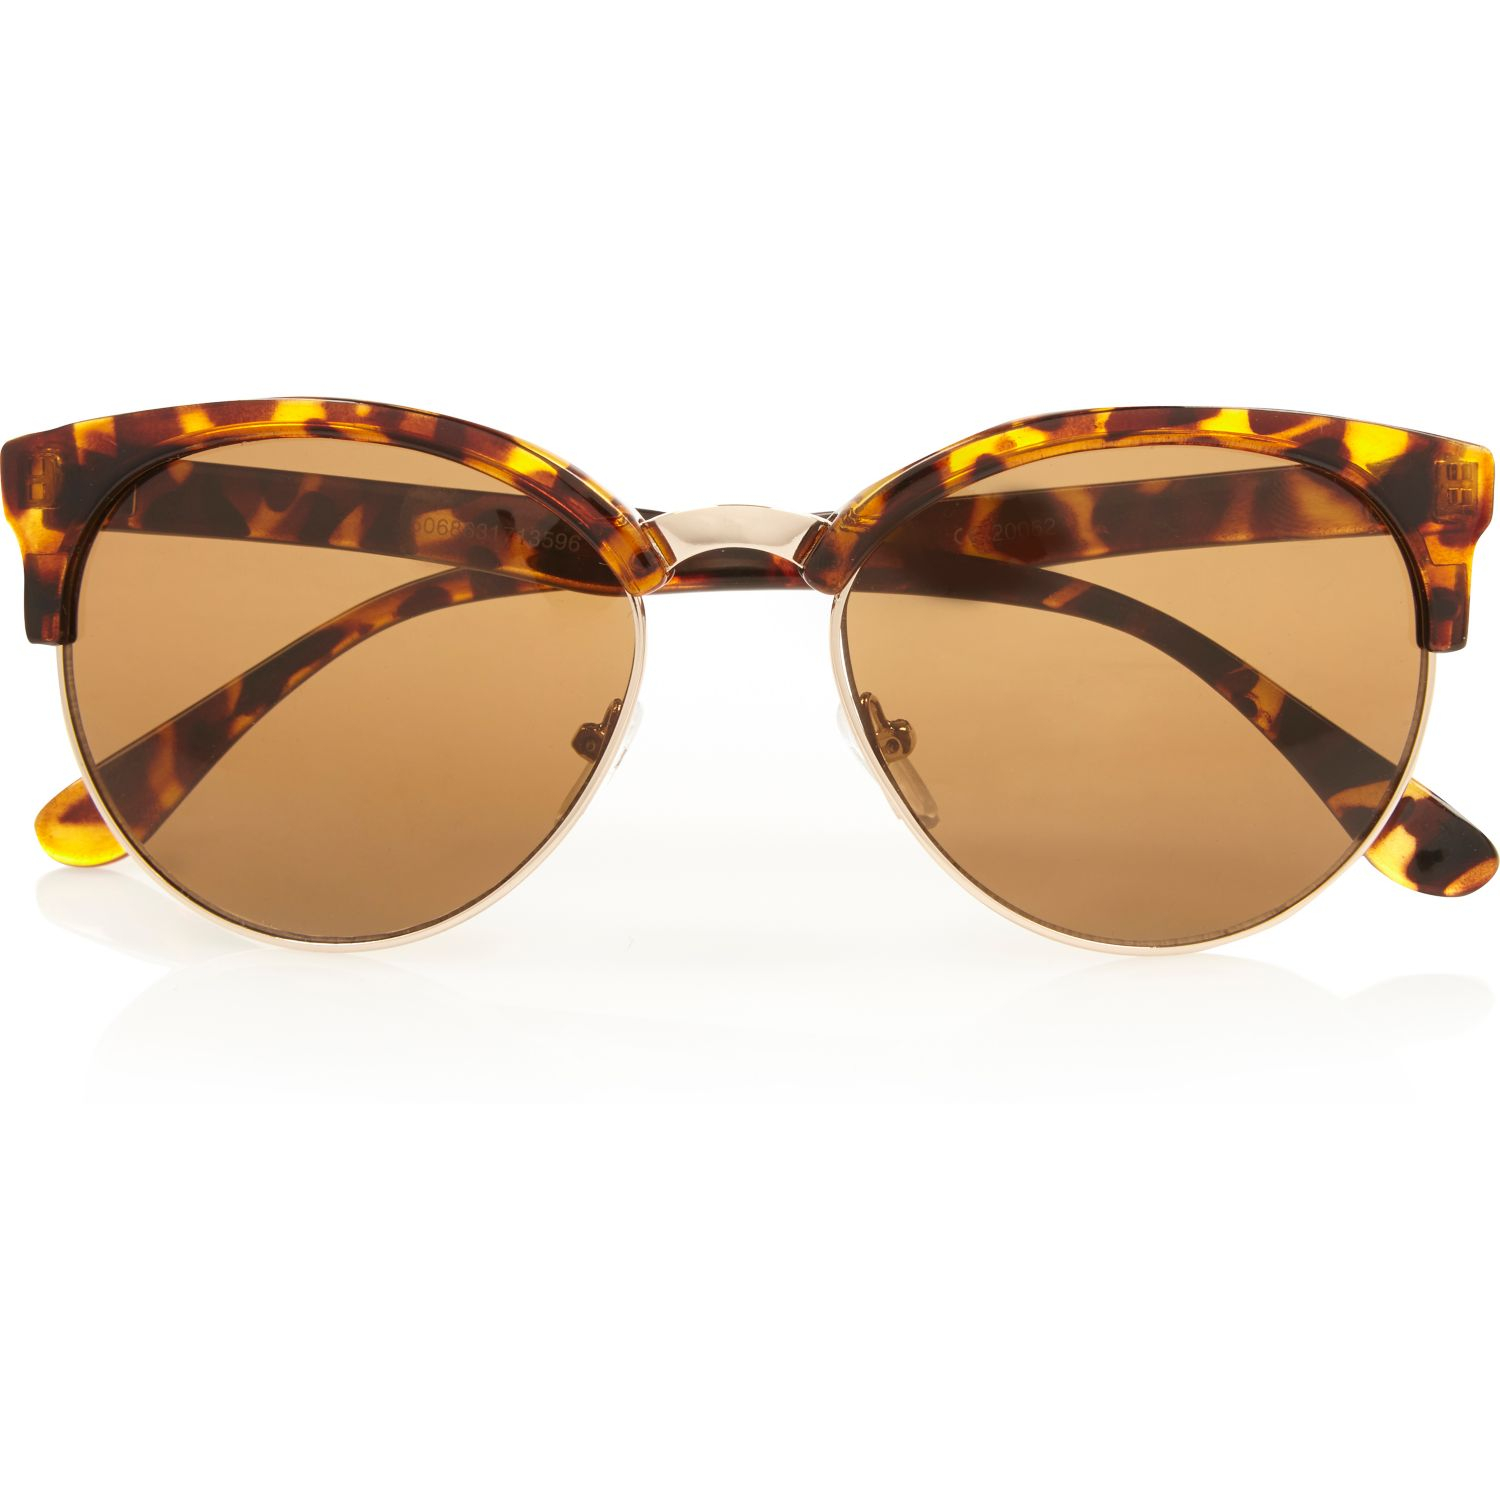 Tortoise Shell Glasses Half Frame : River island Brown Tortoise Half Frame Retro Sunglasses in ...